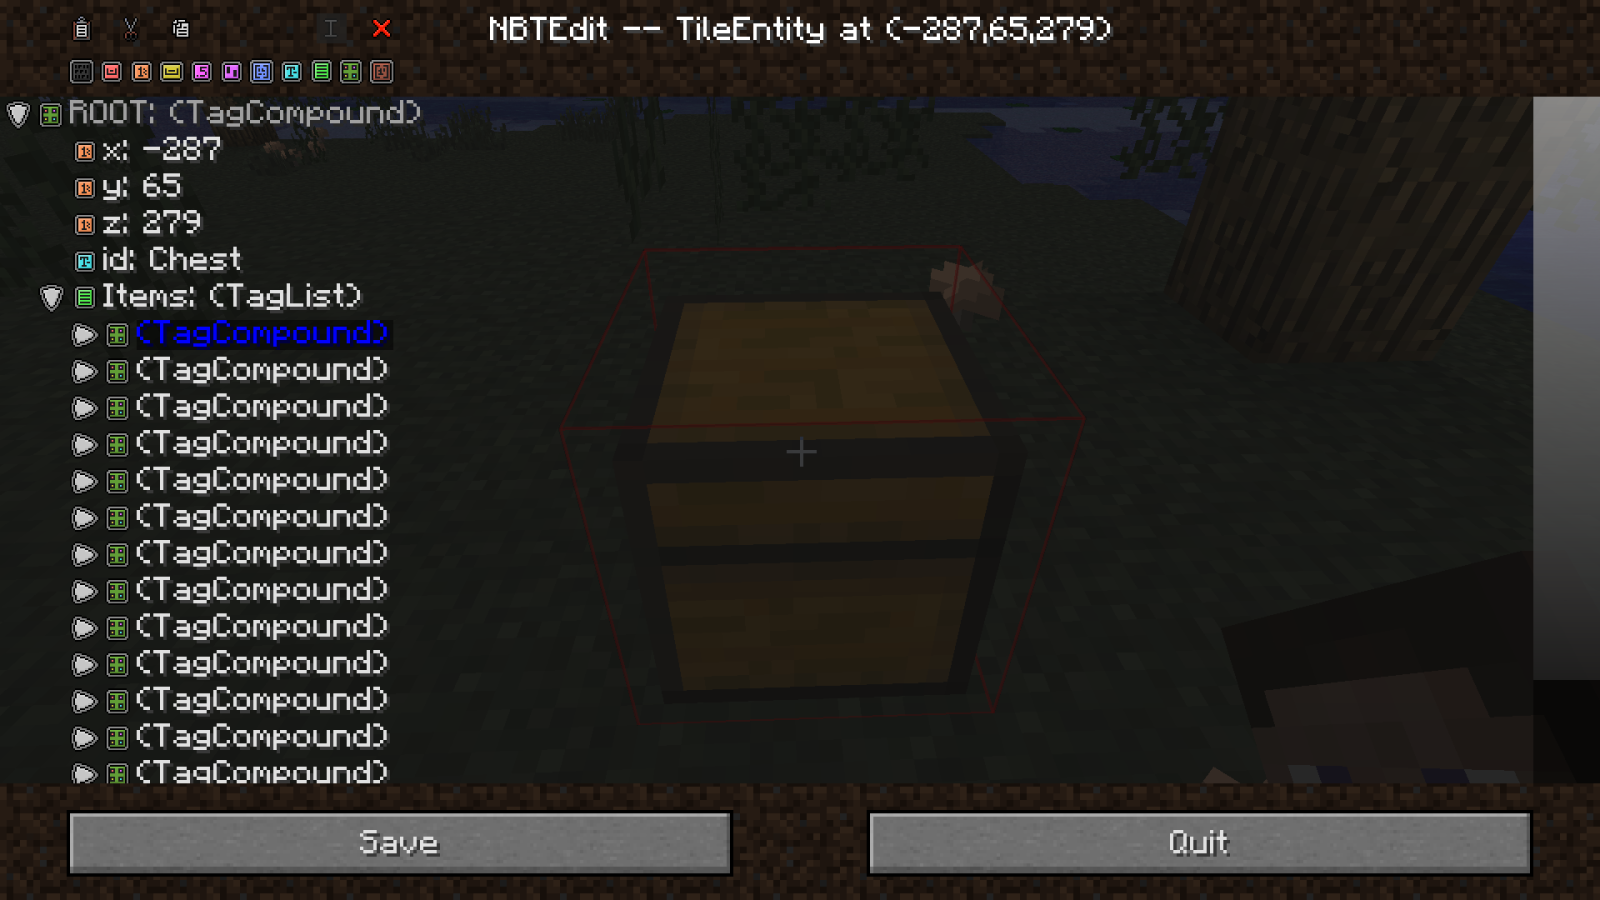 https://img.9minecraft.net/Mods/In-Game-NBTEdit-Mod-1.png